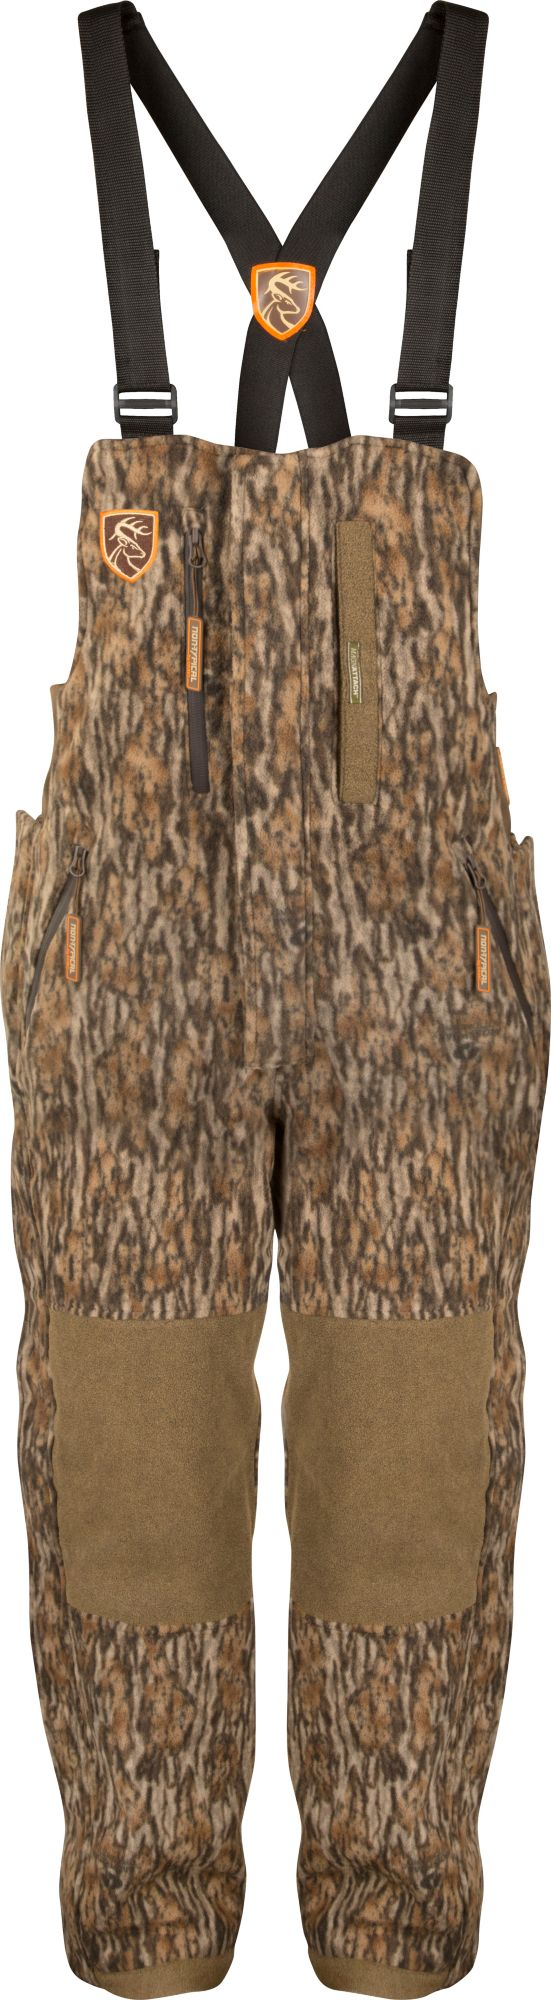 Drake Waterfowl Men's Non-Typical HydroHush Midweight Hunting Bibs with Agion Active, Size: Small, Brown thumbnail